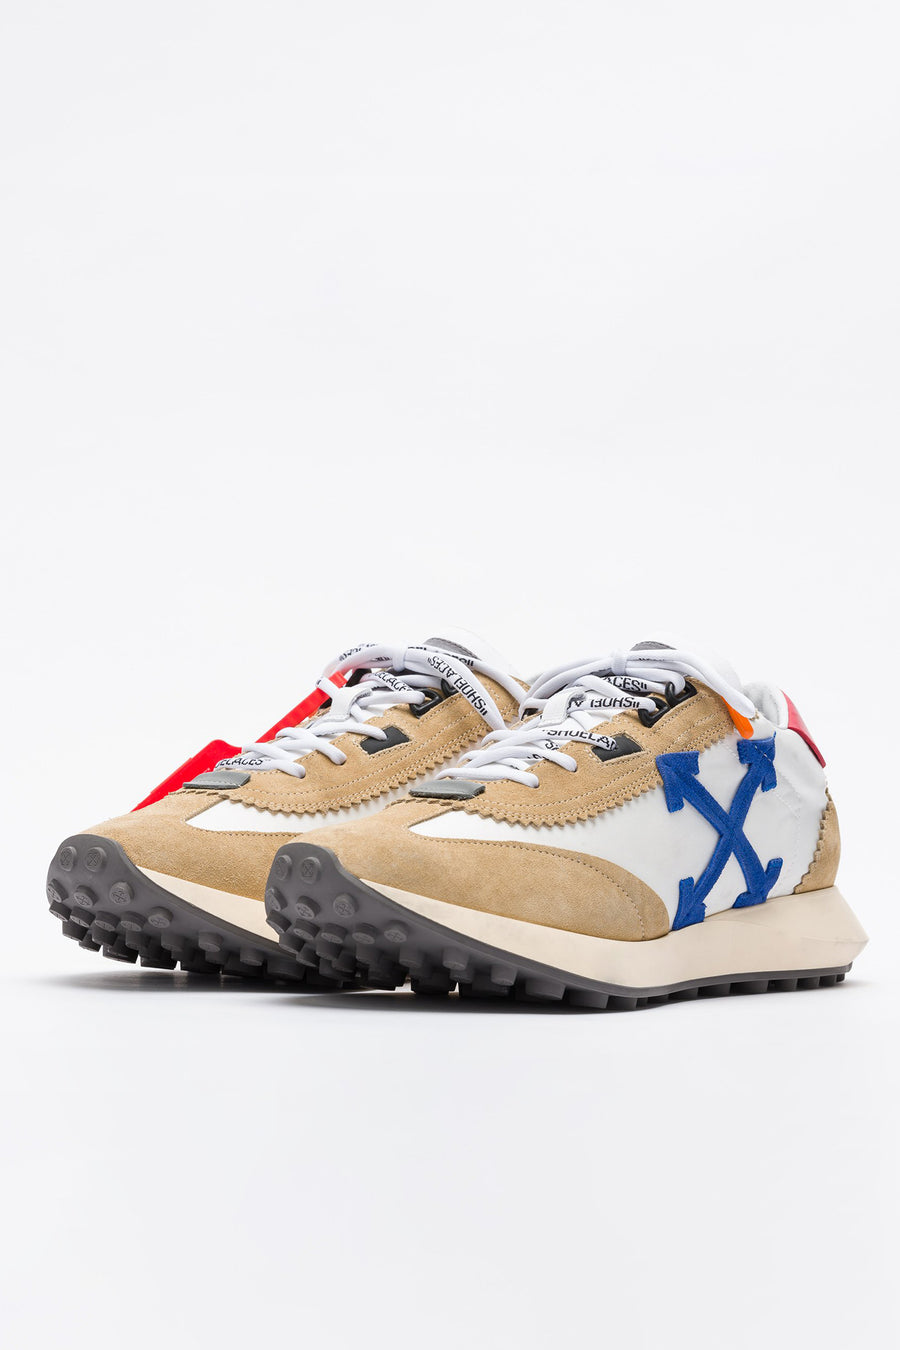 Off-White Running Sneakers in White/Blue - Notre